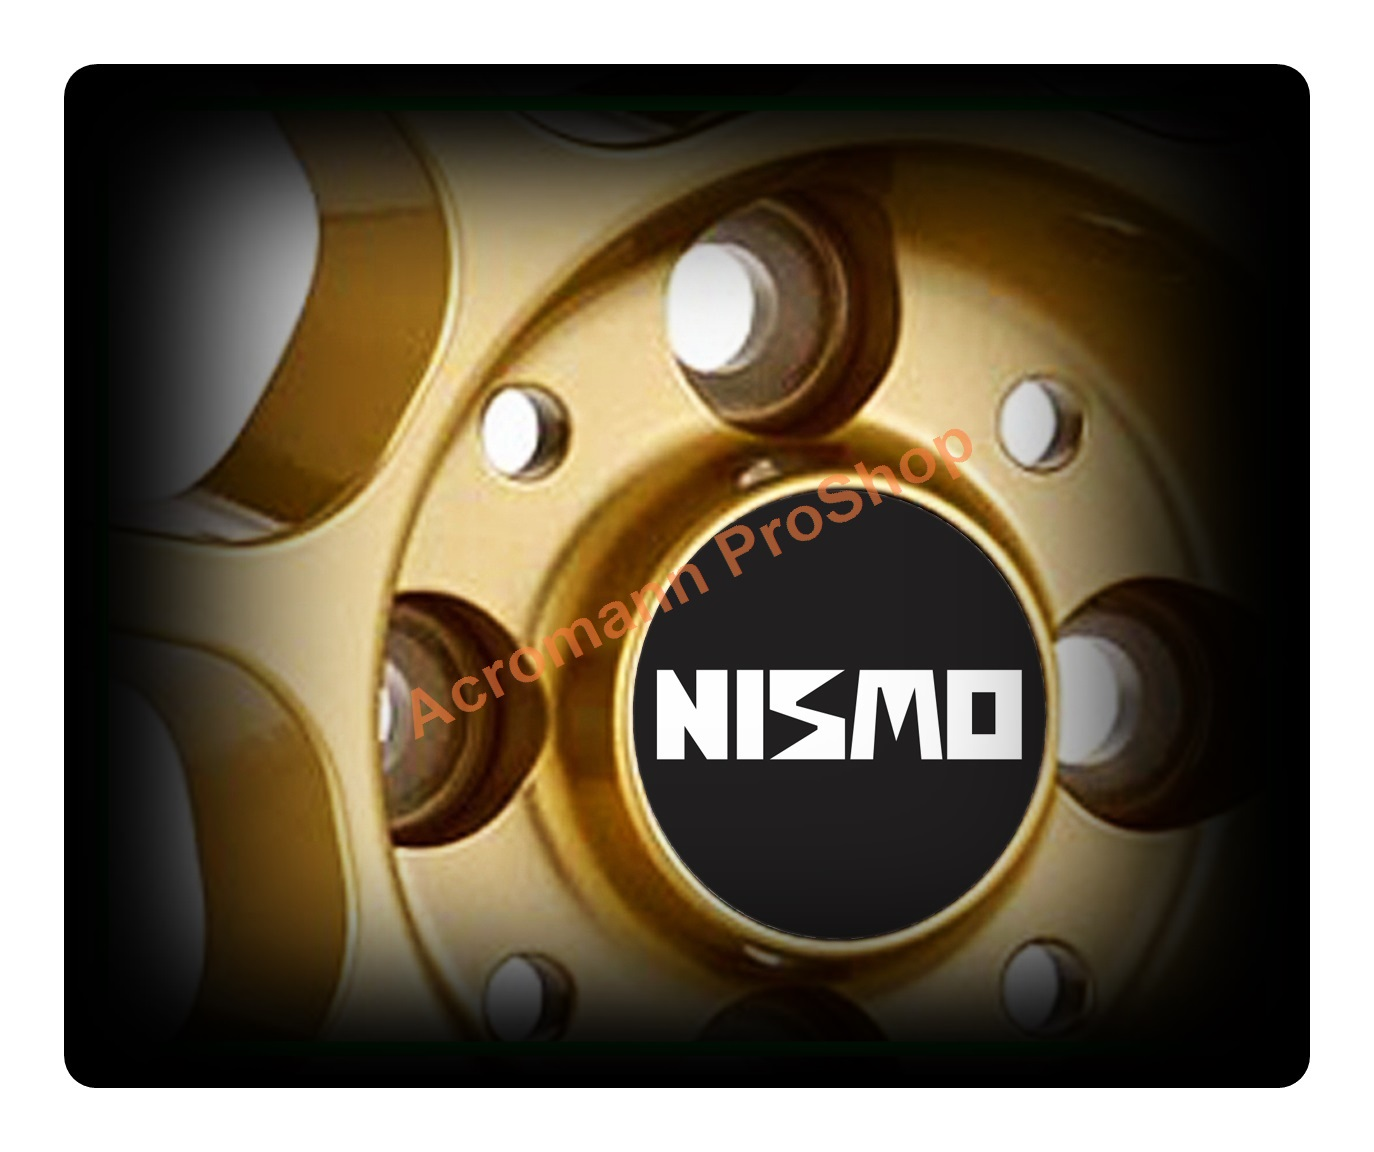 NISMO Printed 2.2inch Wheel Cap Decal (Style A) x 4 pcs